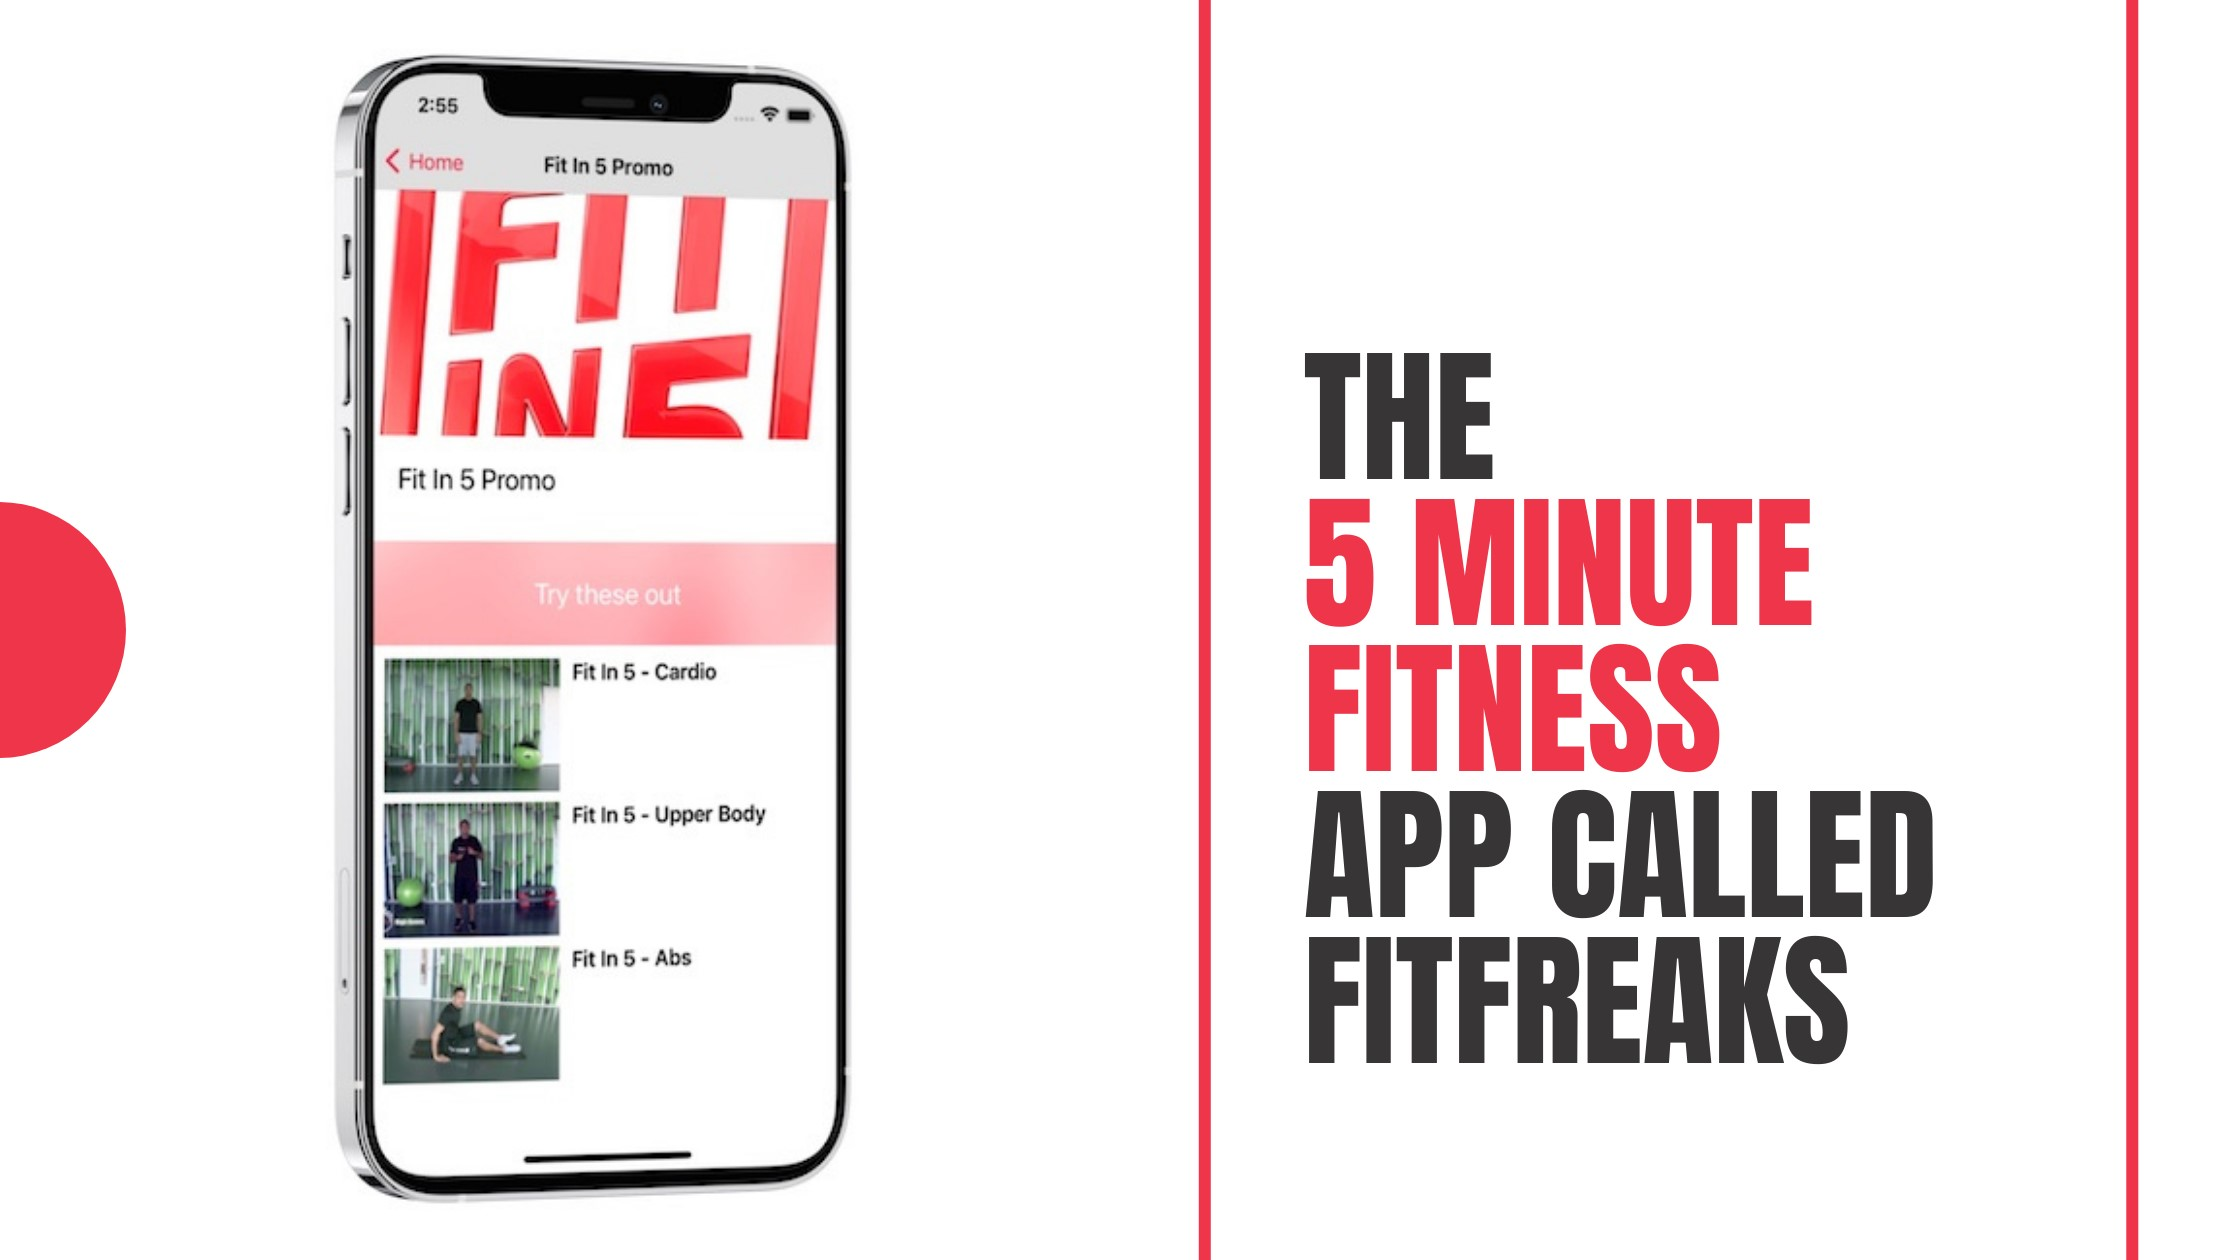 The 5 minute Fitness App Called Fitfreaks